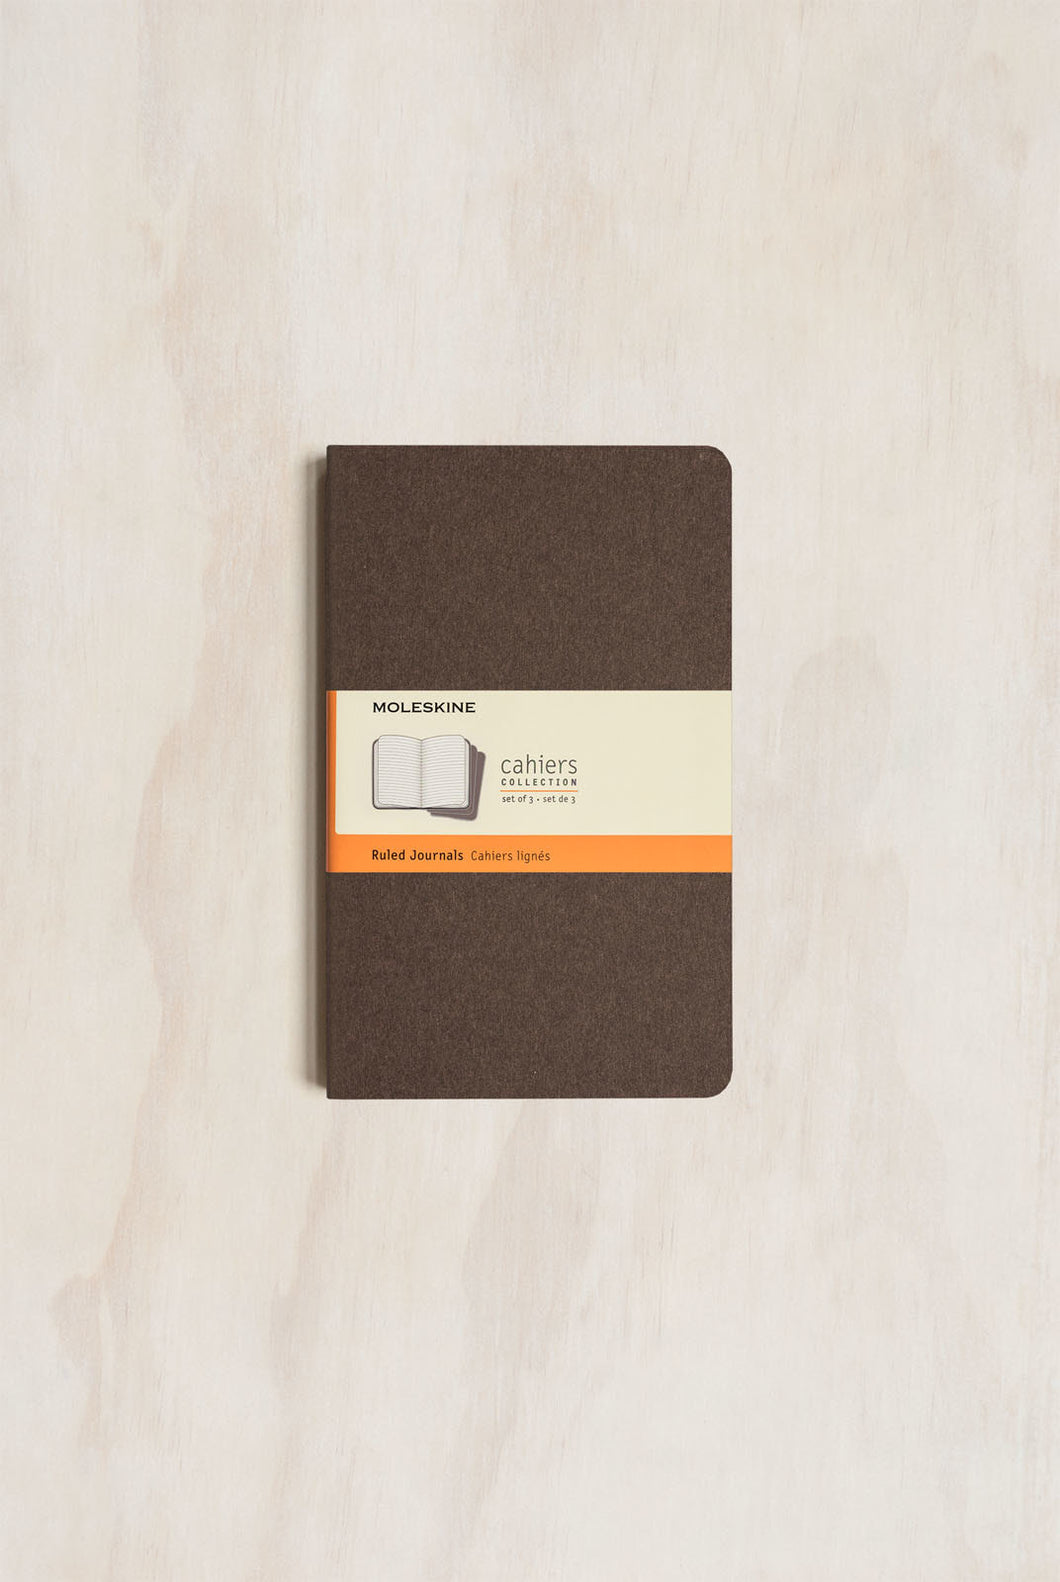 Moleskine - Cahier Notebook - Set of 3 - Large (13x21cm) - Ruled - Coffee Brown